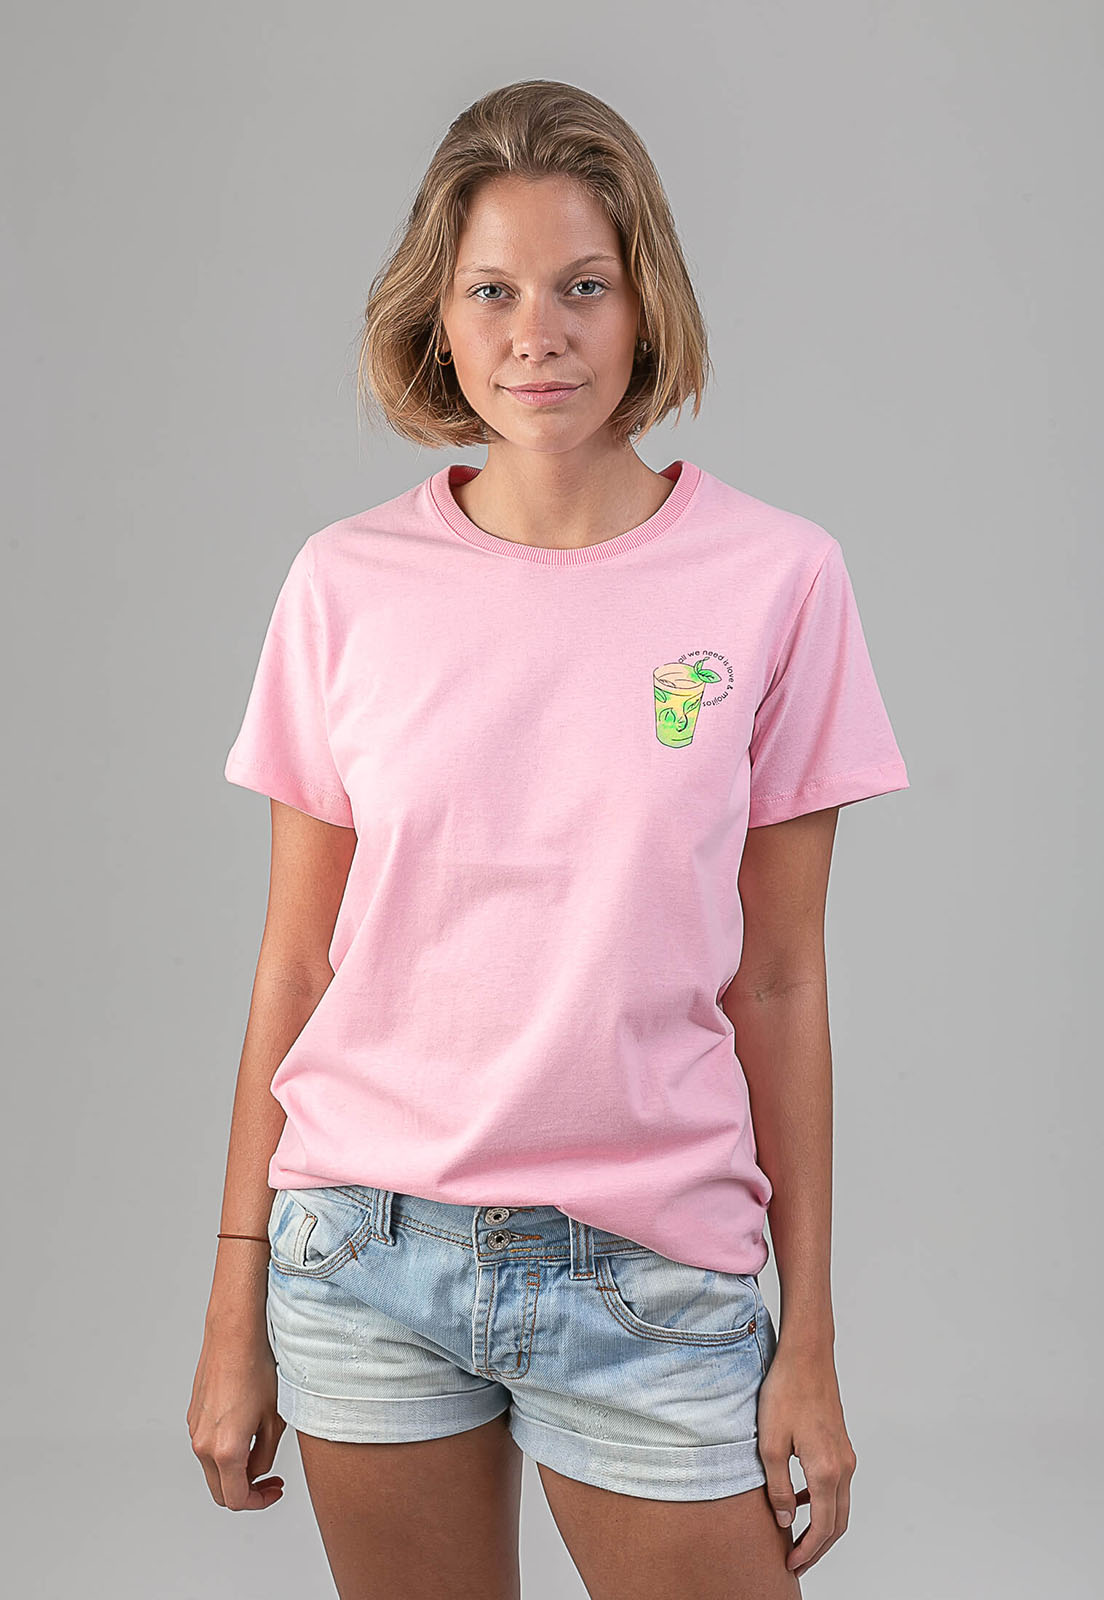 T-shirt Mojitos melty  - melty surf & Co.